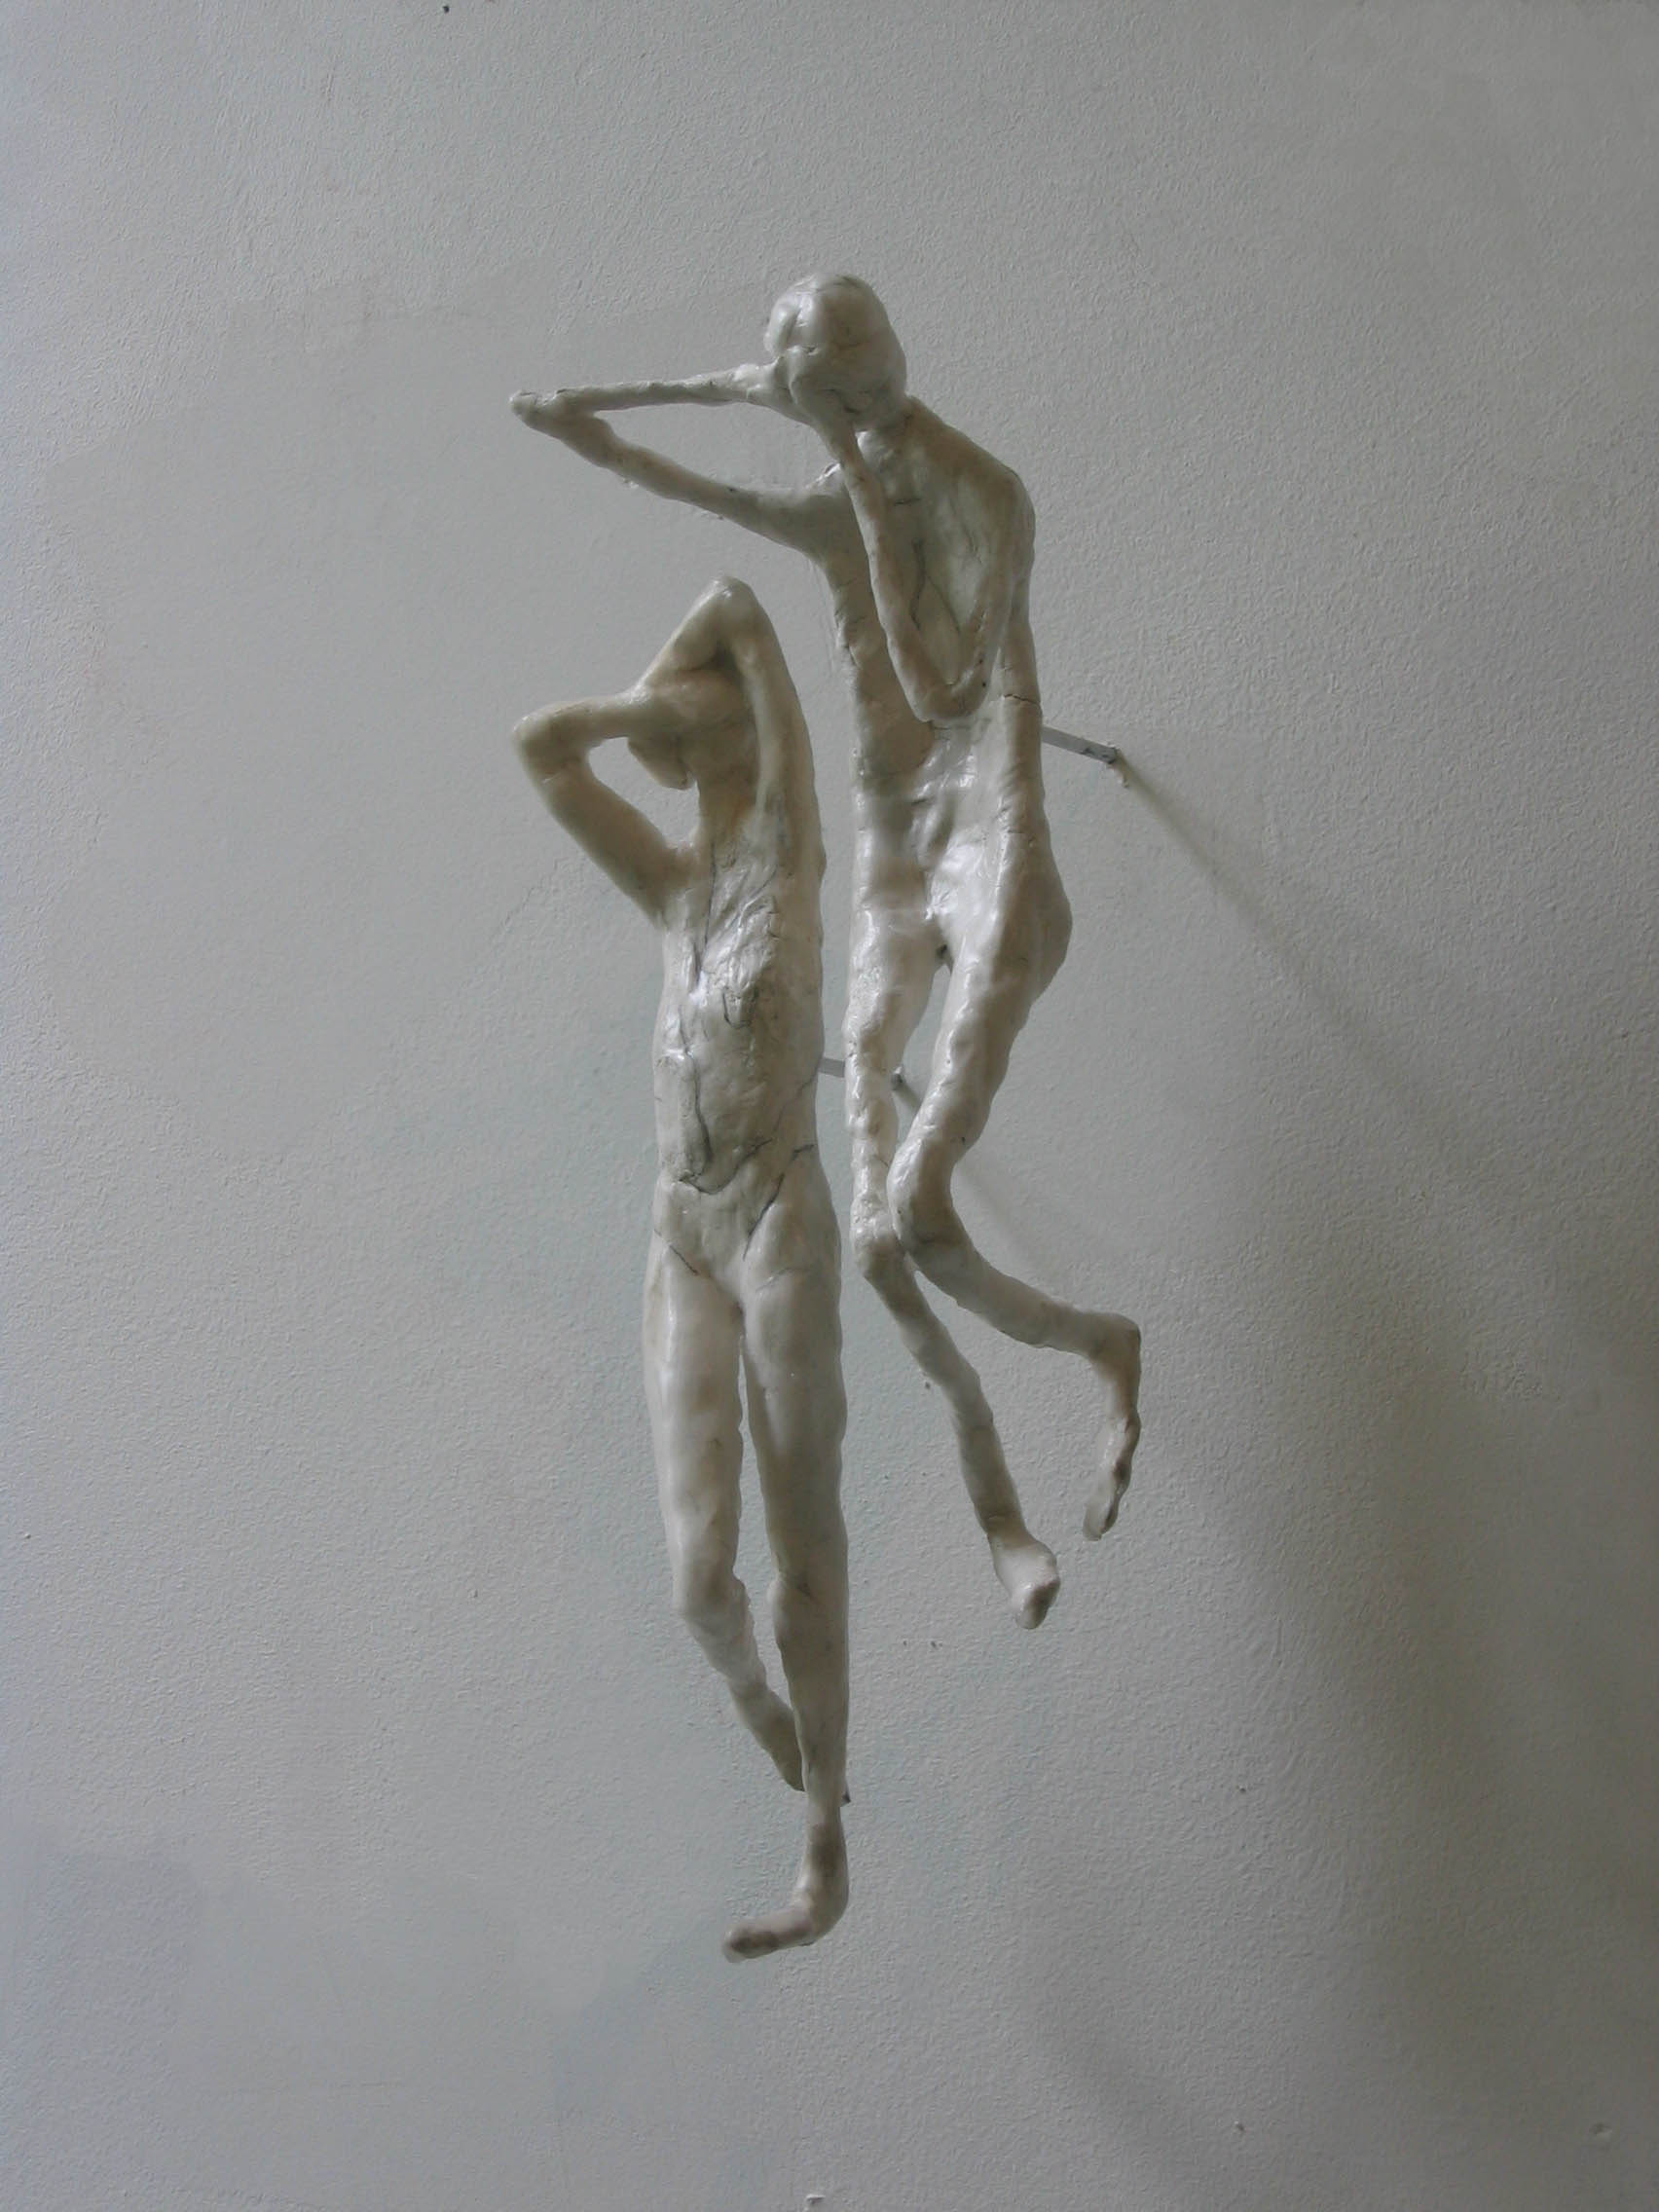 Transitions , 2008, Ceramic, Wax, 42 x 45 x 7 Inches